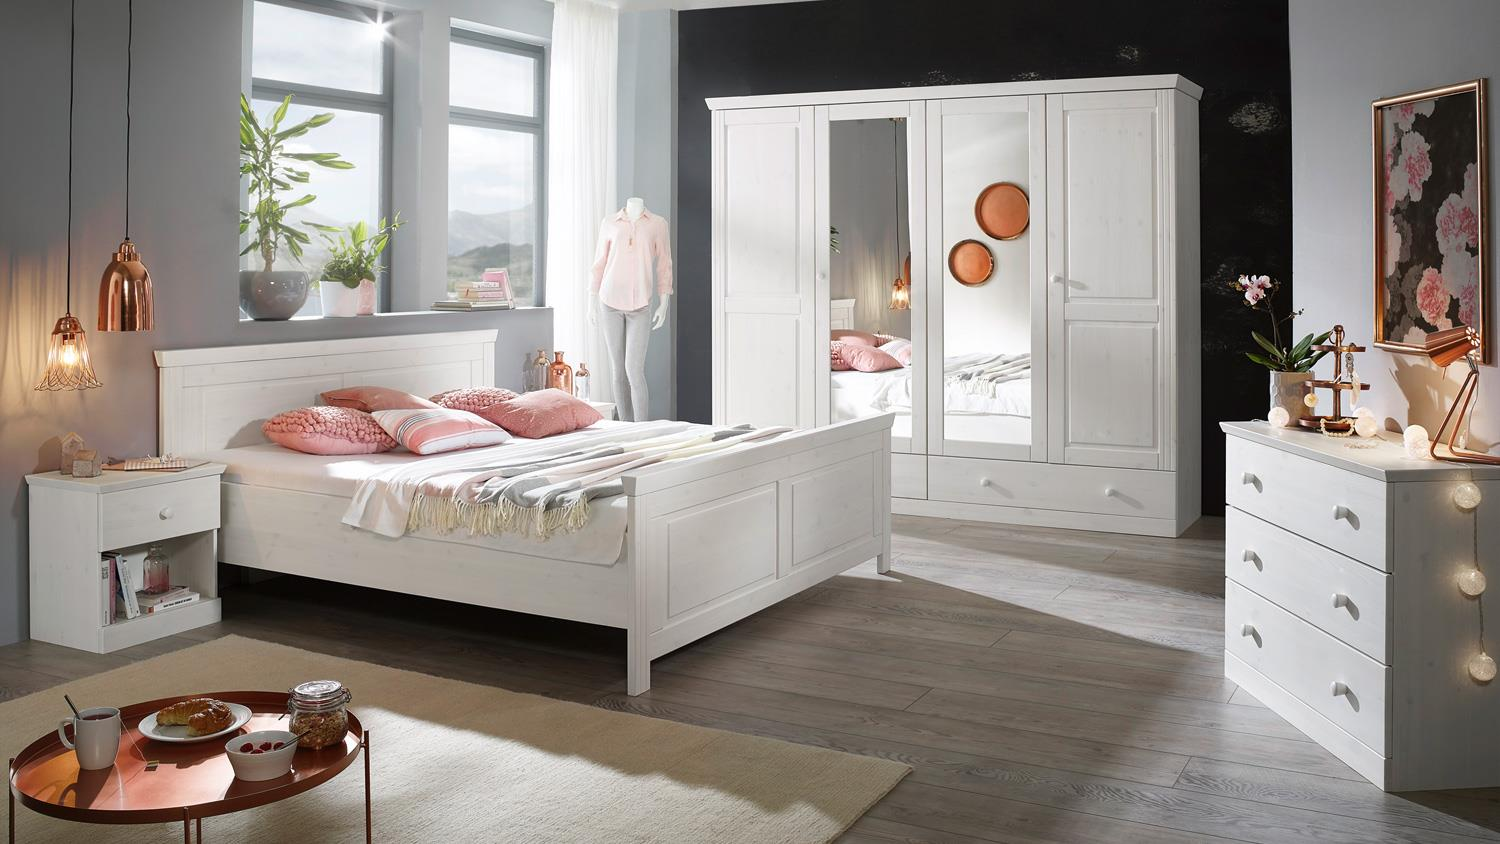 schlafzimmer genia kiefer massiv wei gewachst 4 teilig landhausstil. Black Bedroom Furniture Sets. Home Design Ideas